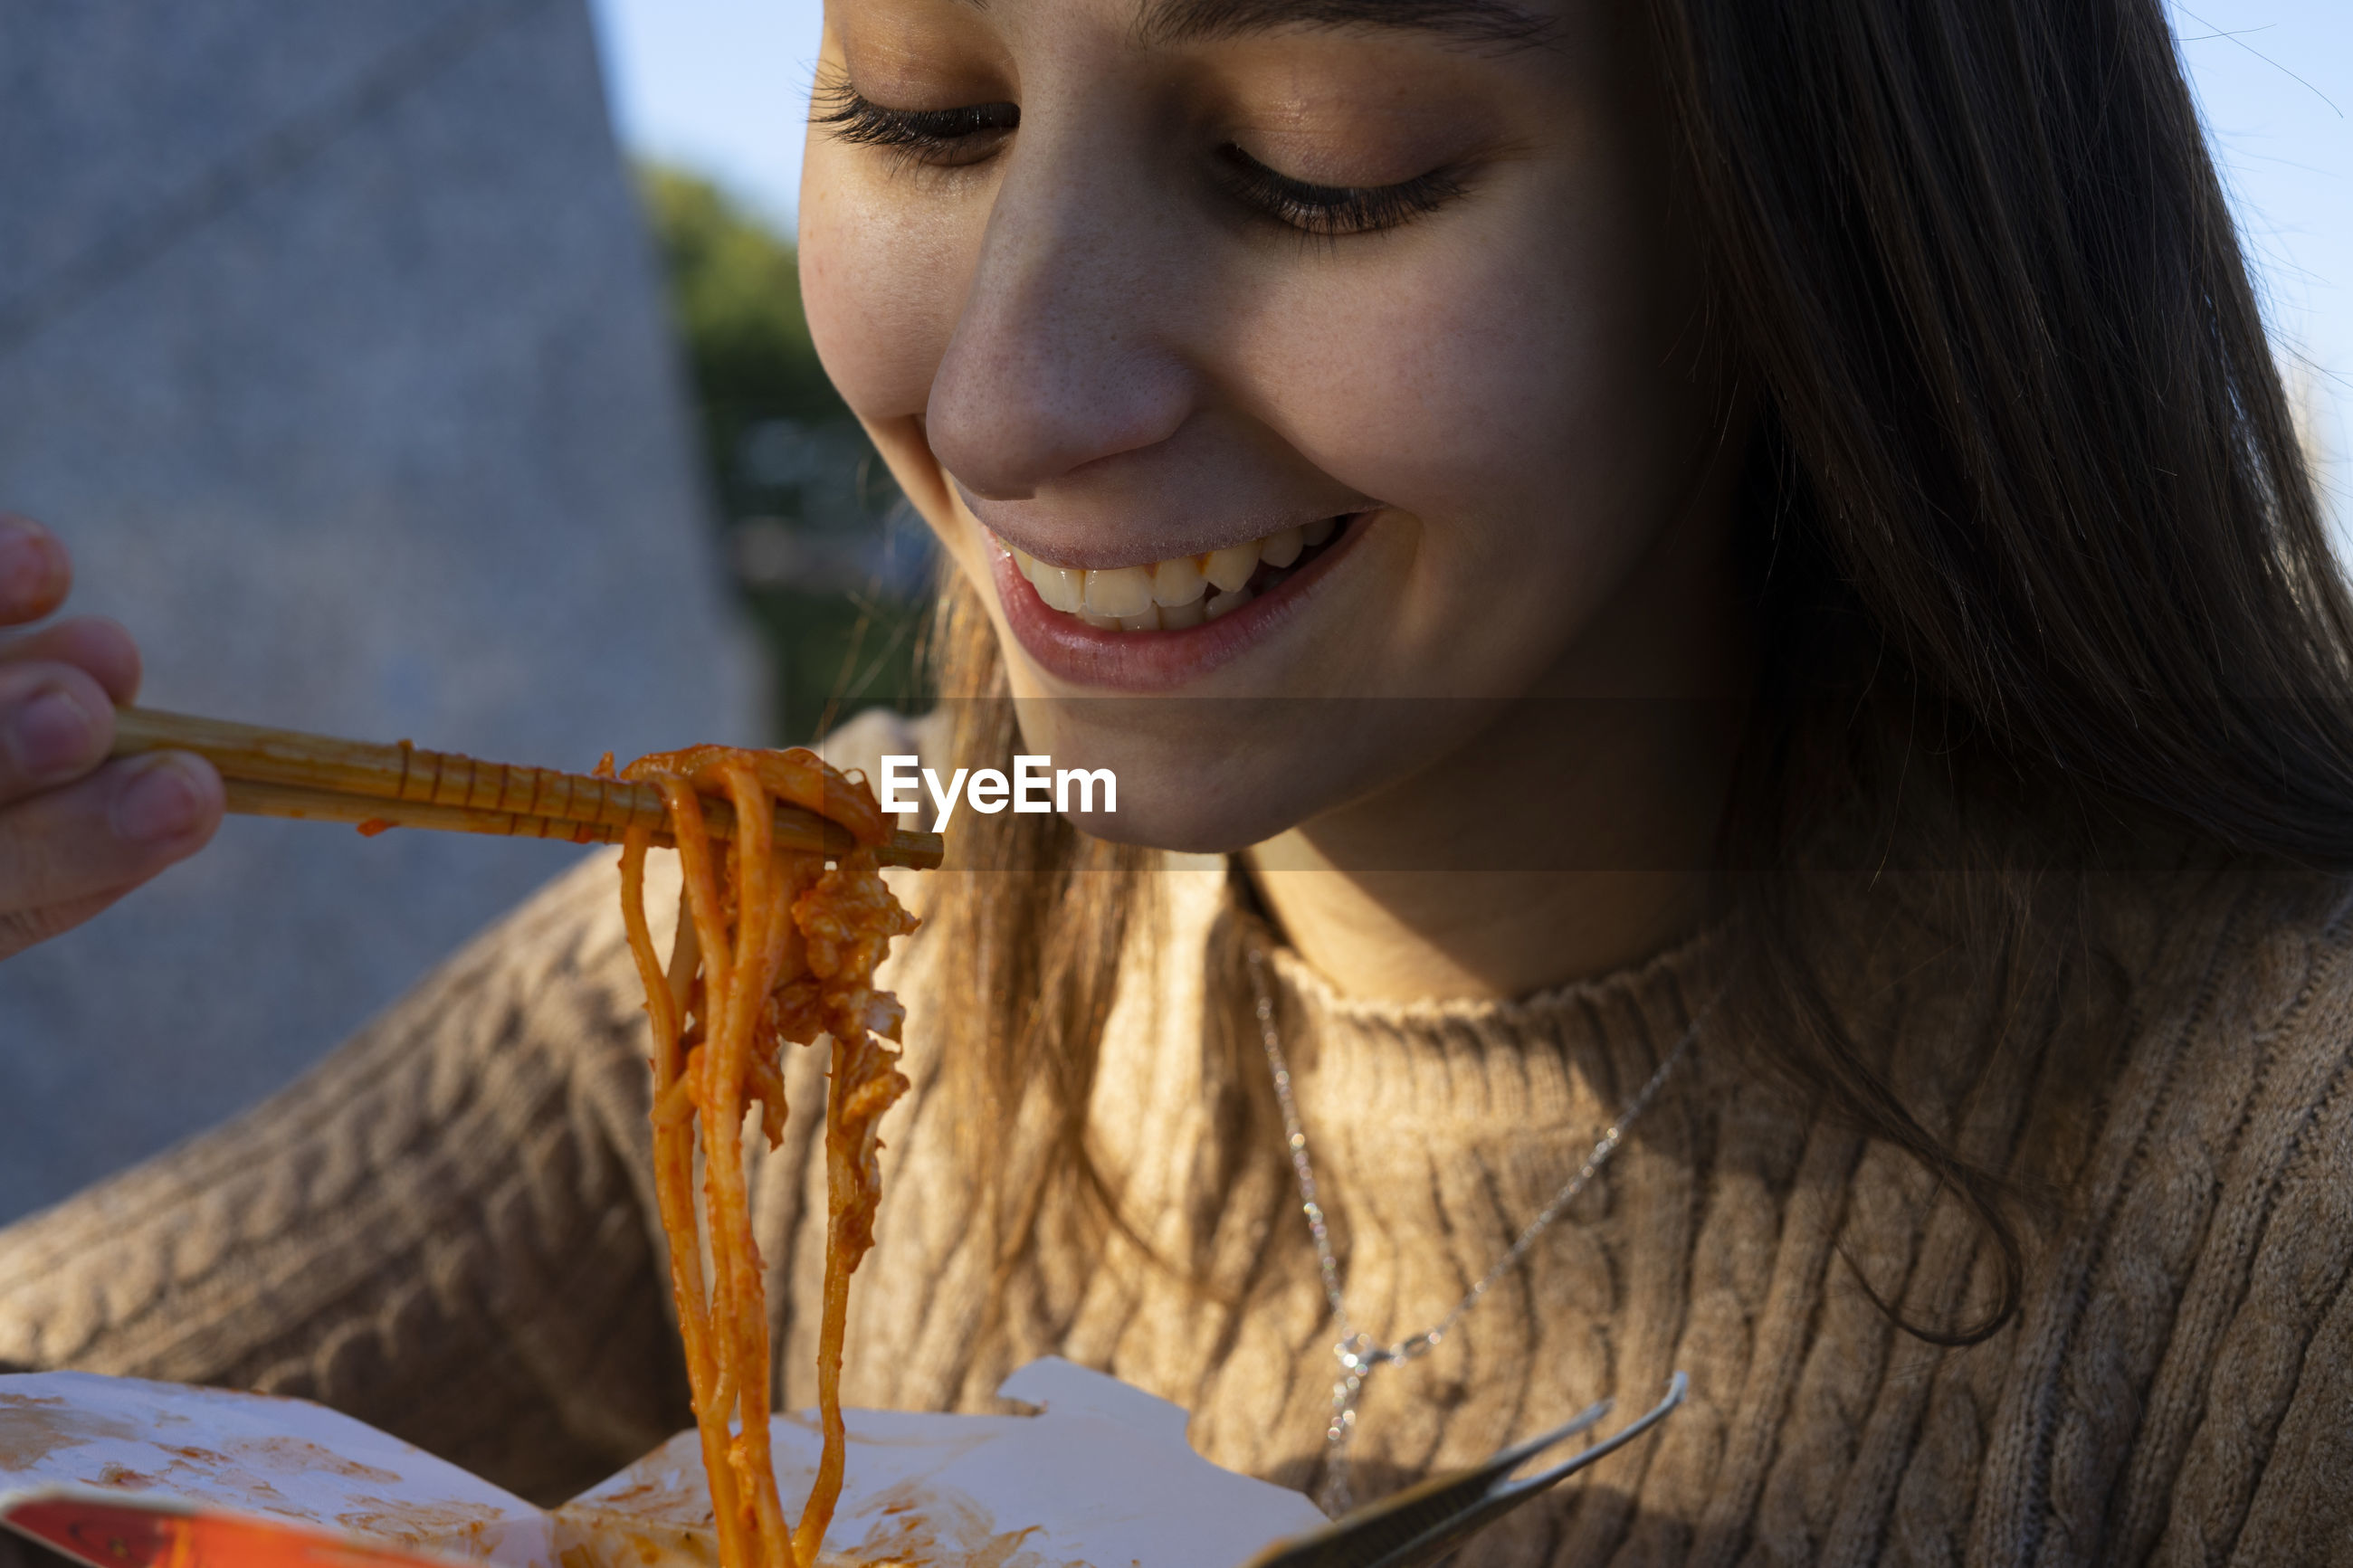 CLOSE-UP PORTRAIT OF YOUNG WOMAN EATING FOOD